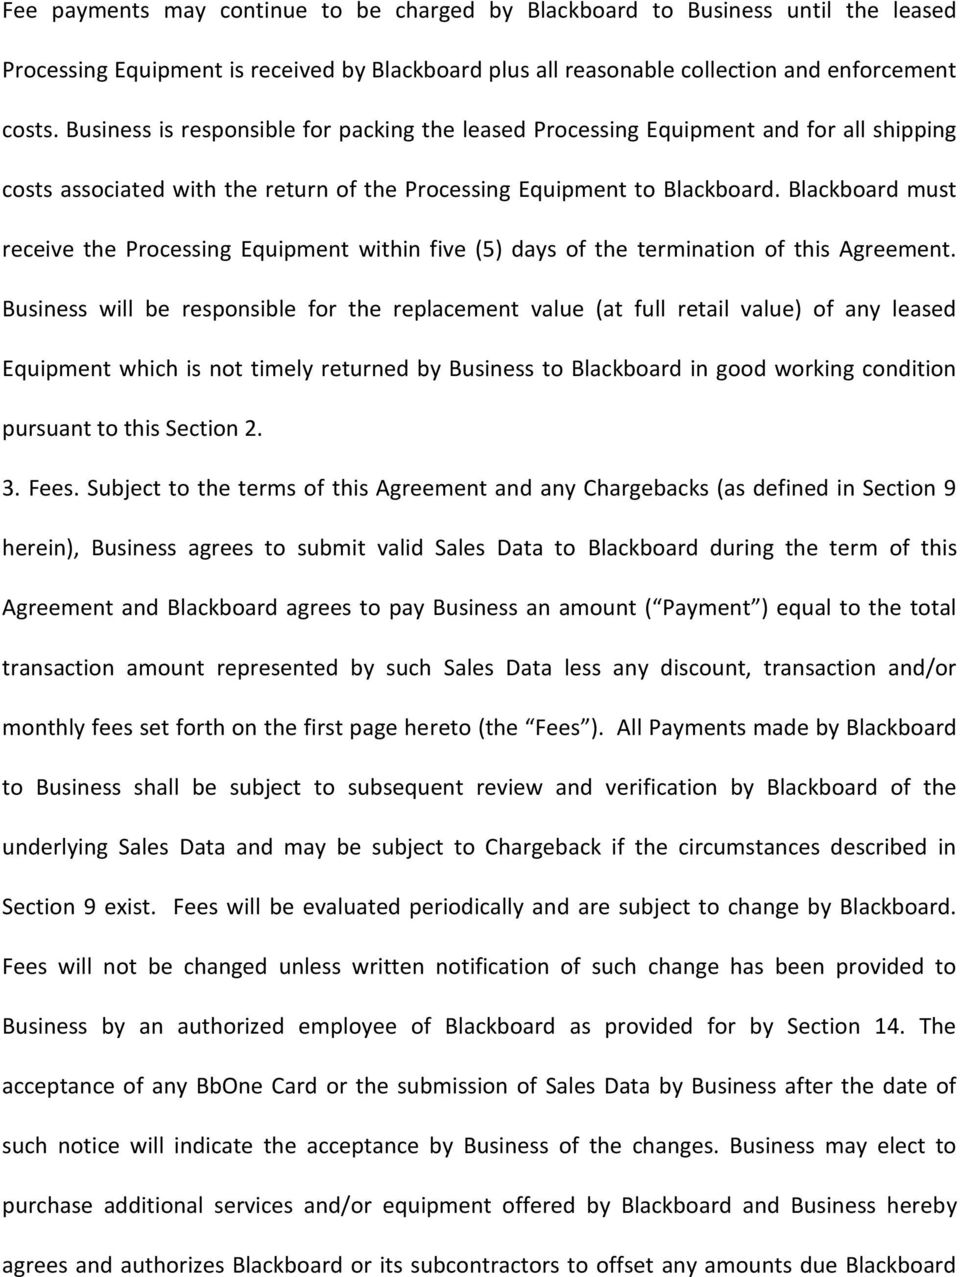 Blackboard must receive the Processing Equipment within five (5) days of the termination of this Agreement.